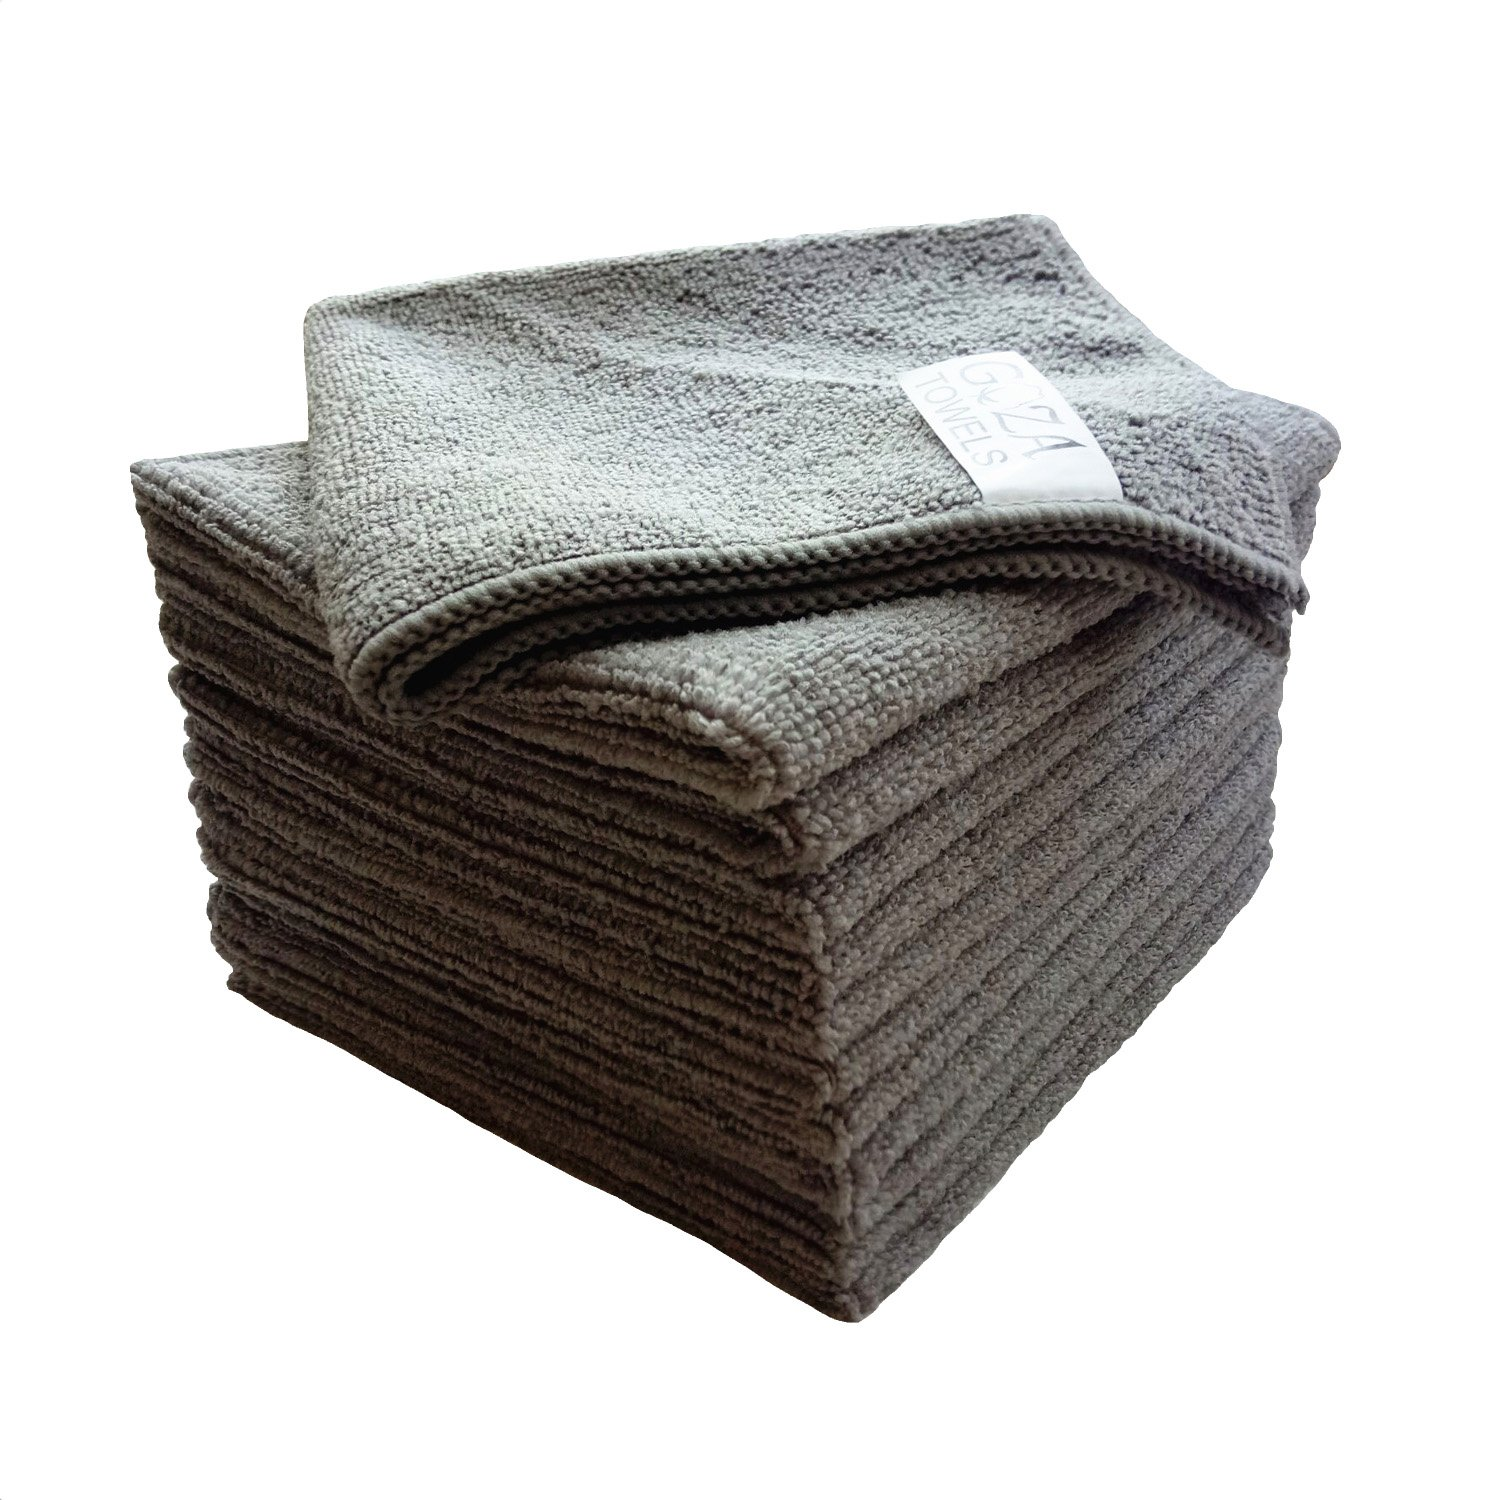 Goza Towels Microfiber Towel Cleaning Cloths Professional Grade All-Purpose 12''x12'' (Grey, 12 Pack)